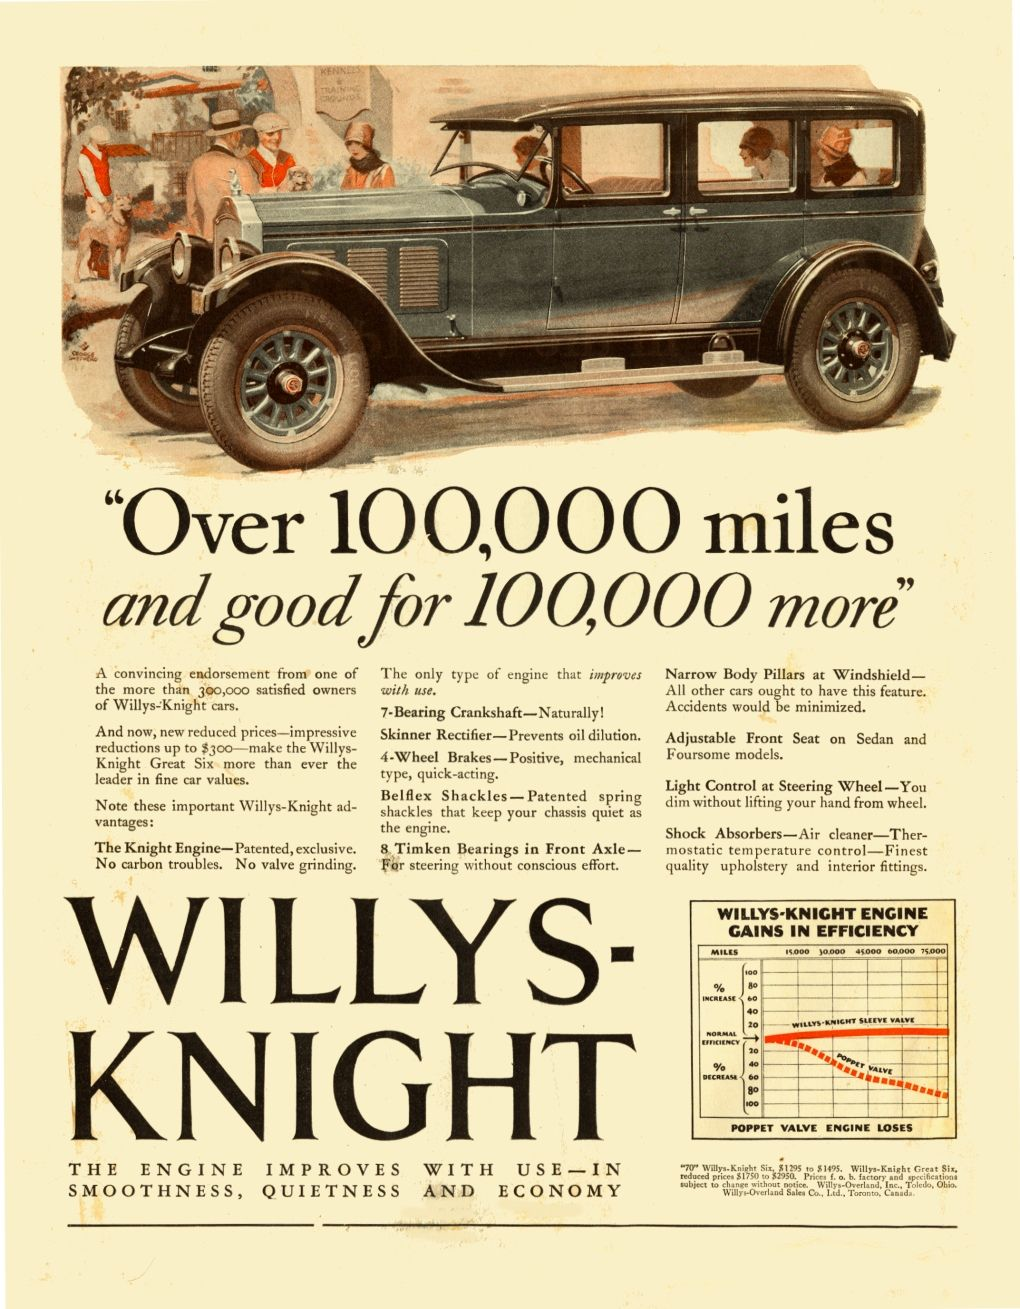 Willys Knight 1927 | Vintage car ads | Pinterest | Ads, Cars and Jeeps